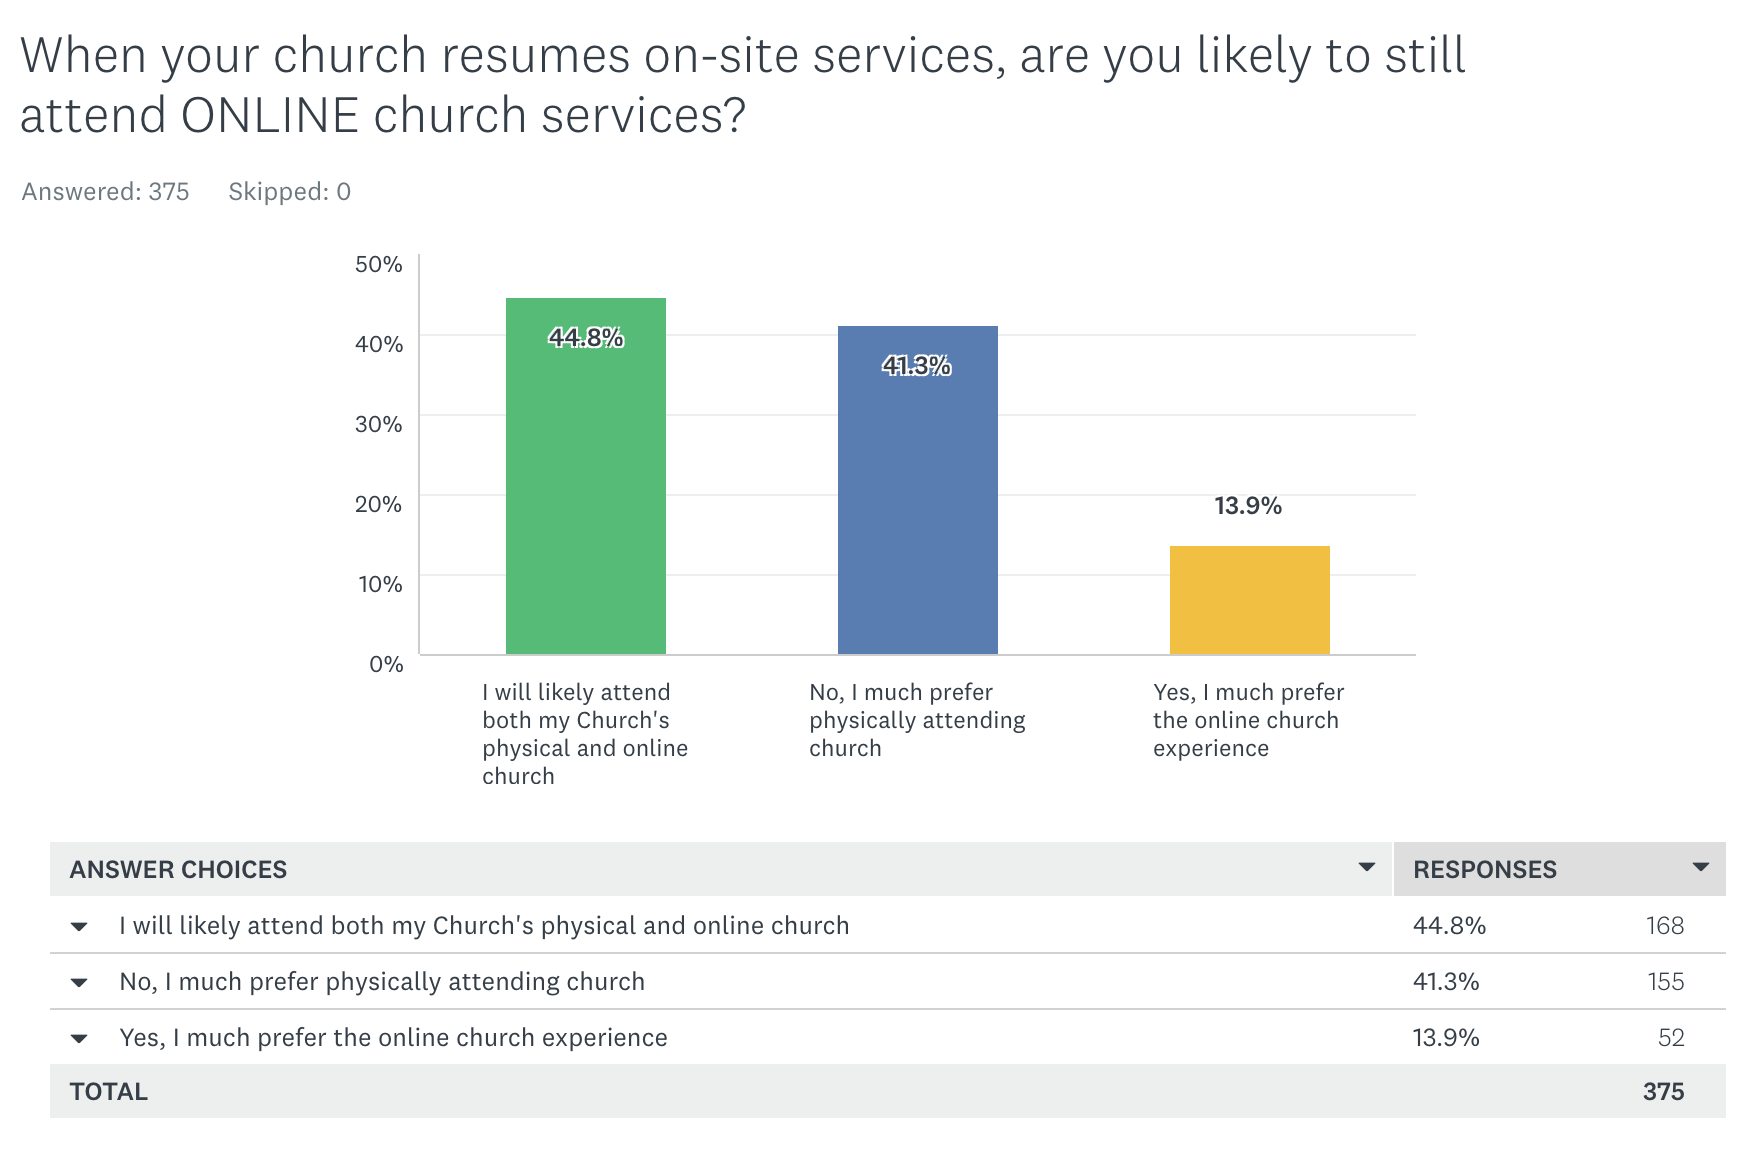 Will you continue to attend online church services?